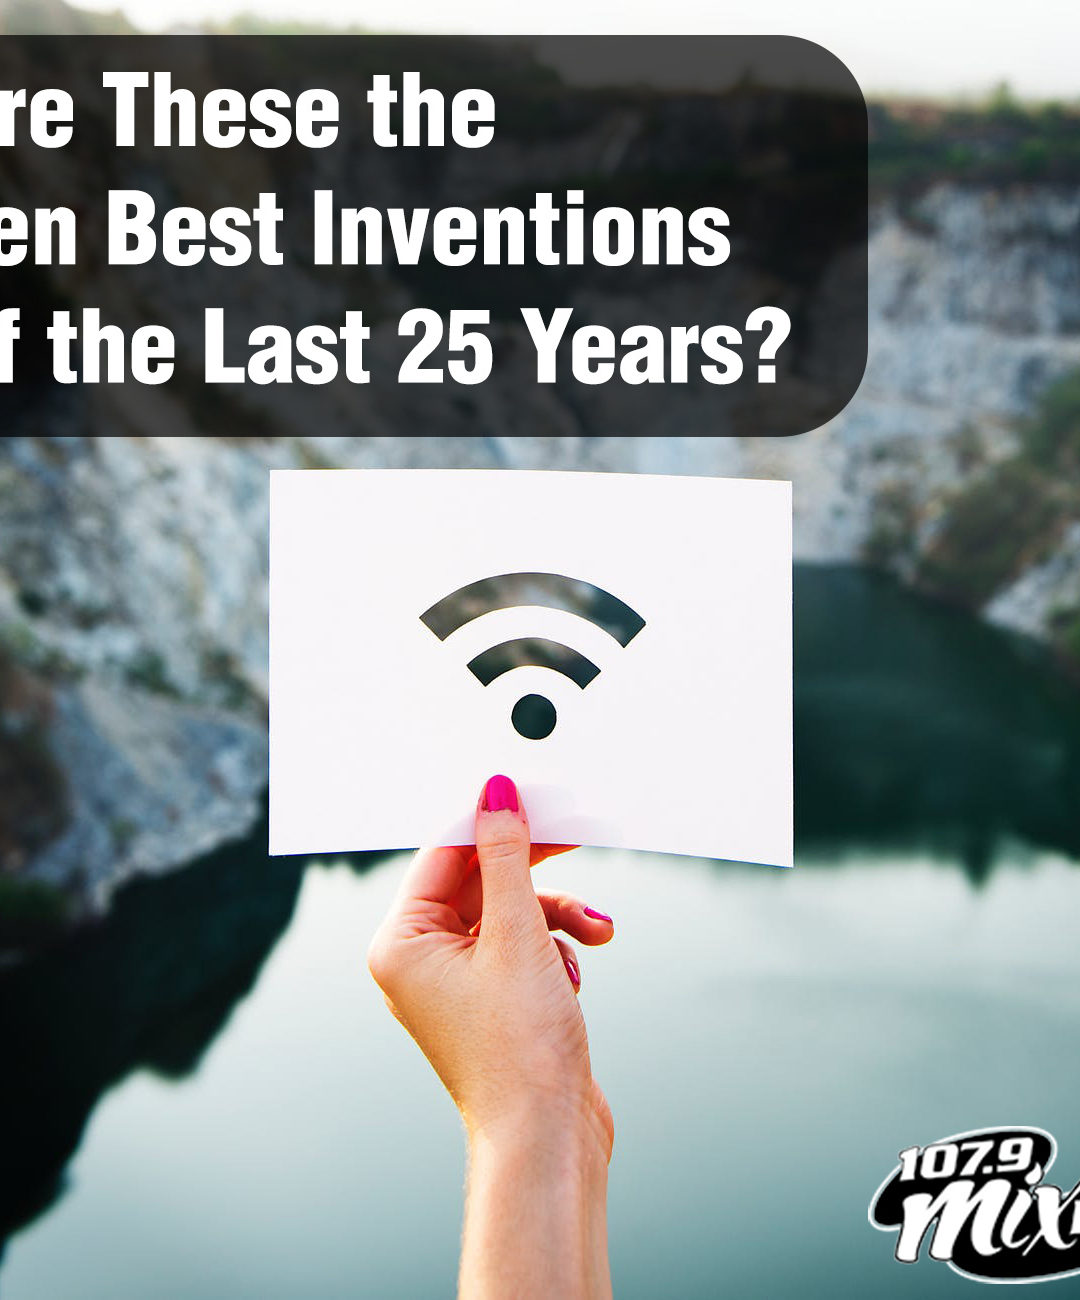 Are These the Ten Best Inventions of the Last 25 Years?